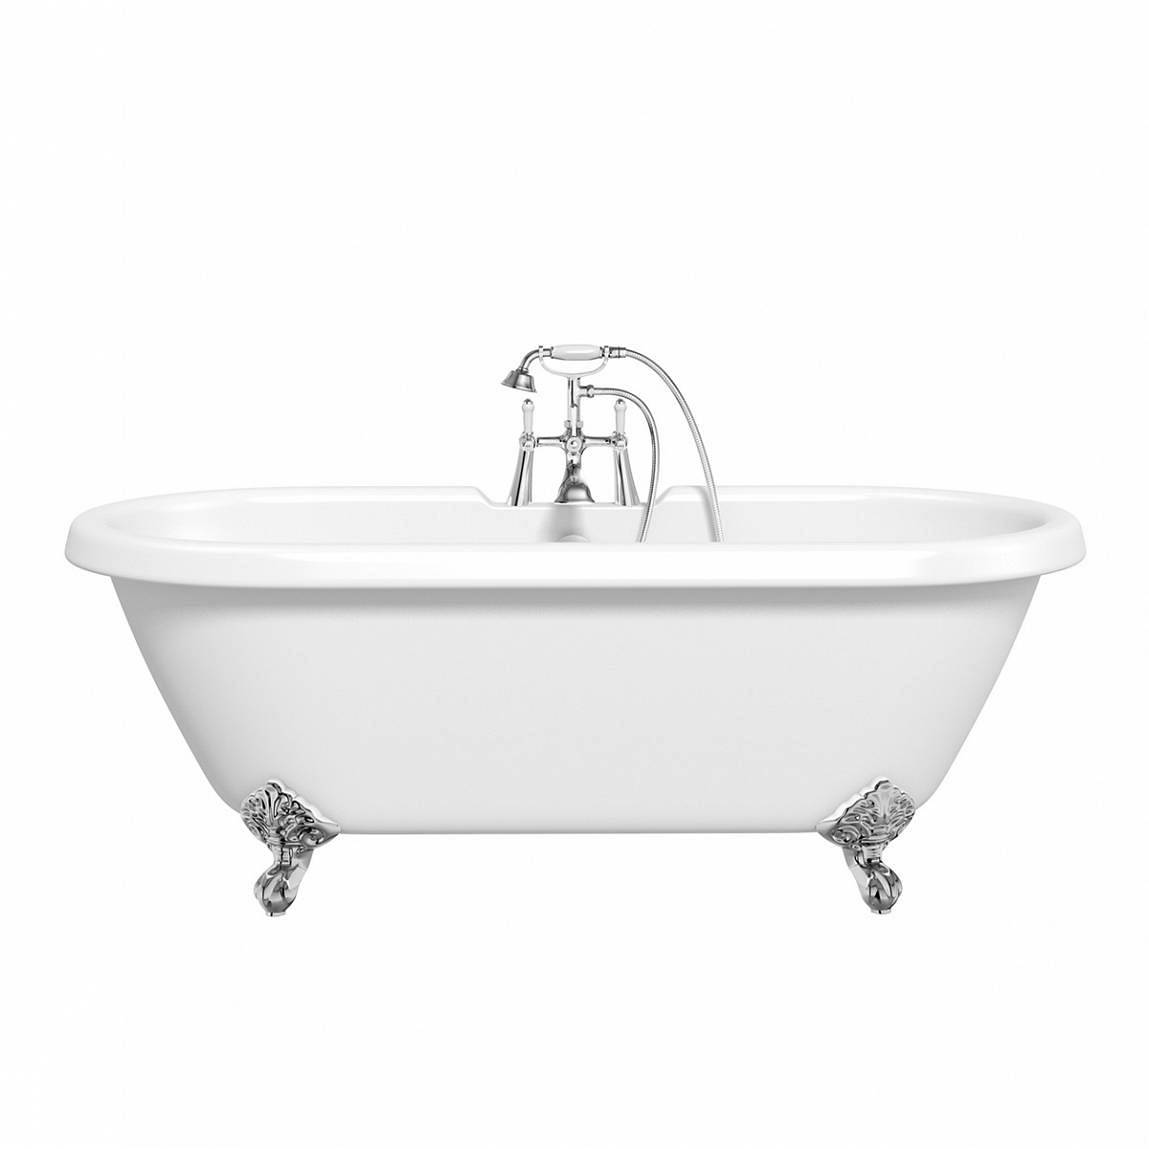 Image of Shakespeare Roll Top Bath Small with Ball Feet